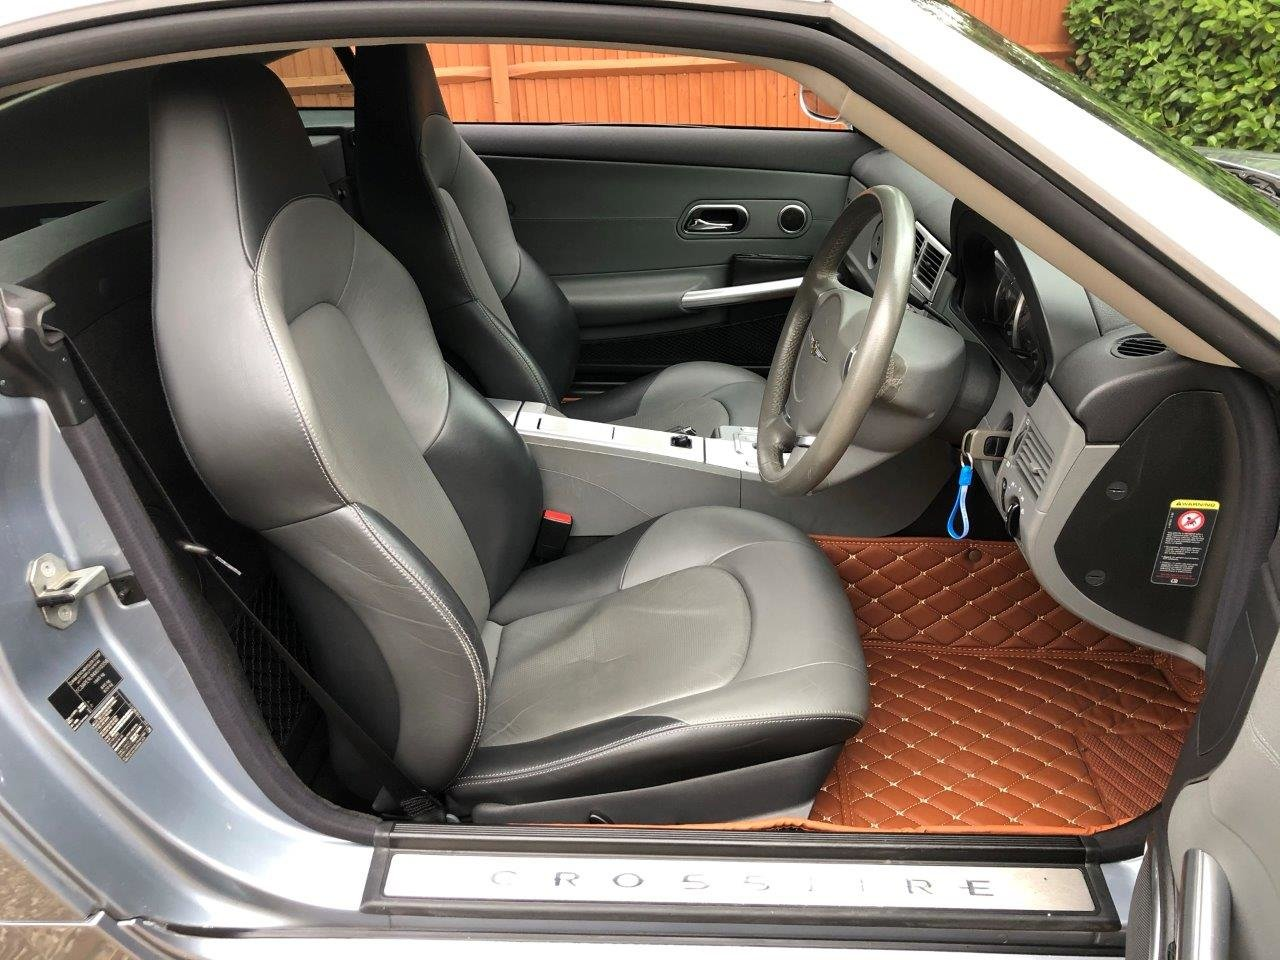 2003 Chrysler Crossfire 3.2i V6 Coupe 5-Speed Automatic SOLD (picture 9 of 12)